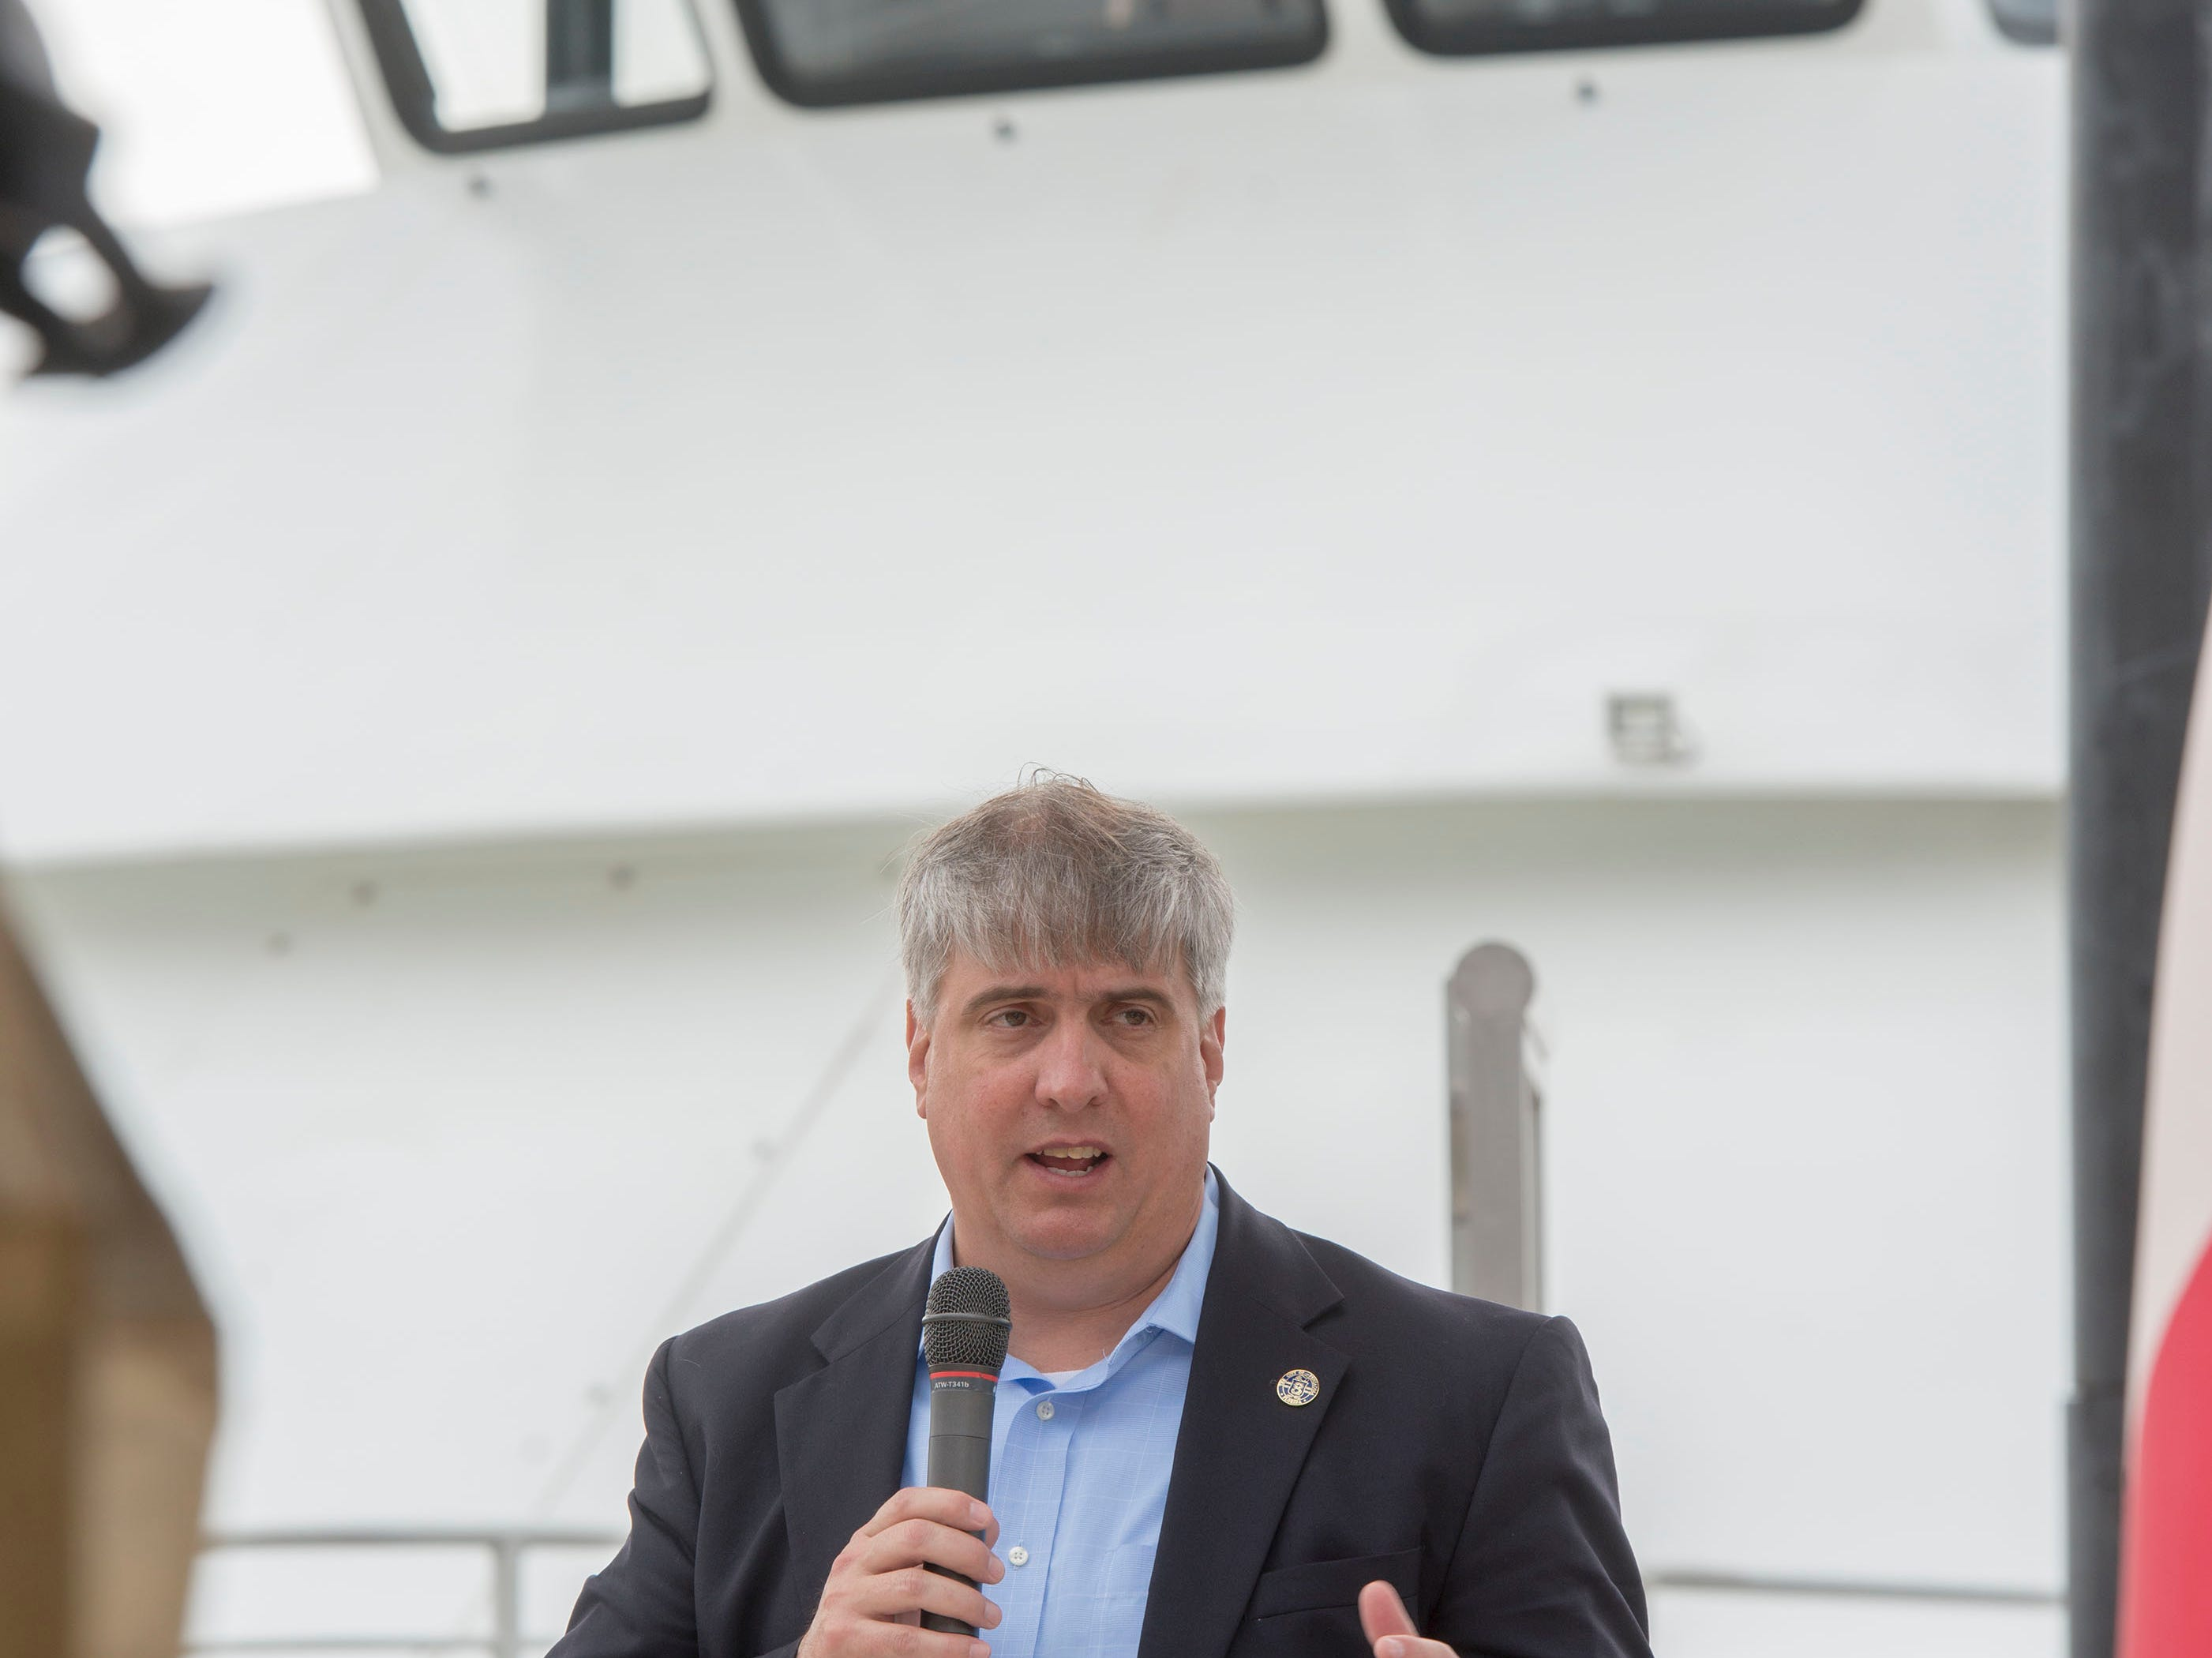 Pensacola mayor Grover Robinson speaks during the City of Pensacola's Ferry Terminal Building Grand Opening and ribbon cutting Saturday, April 13, 2019.